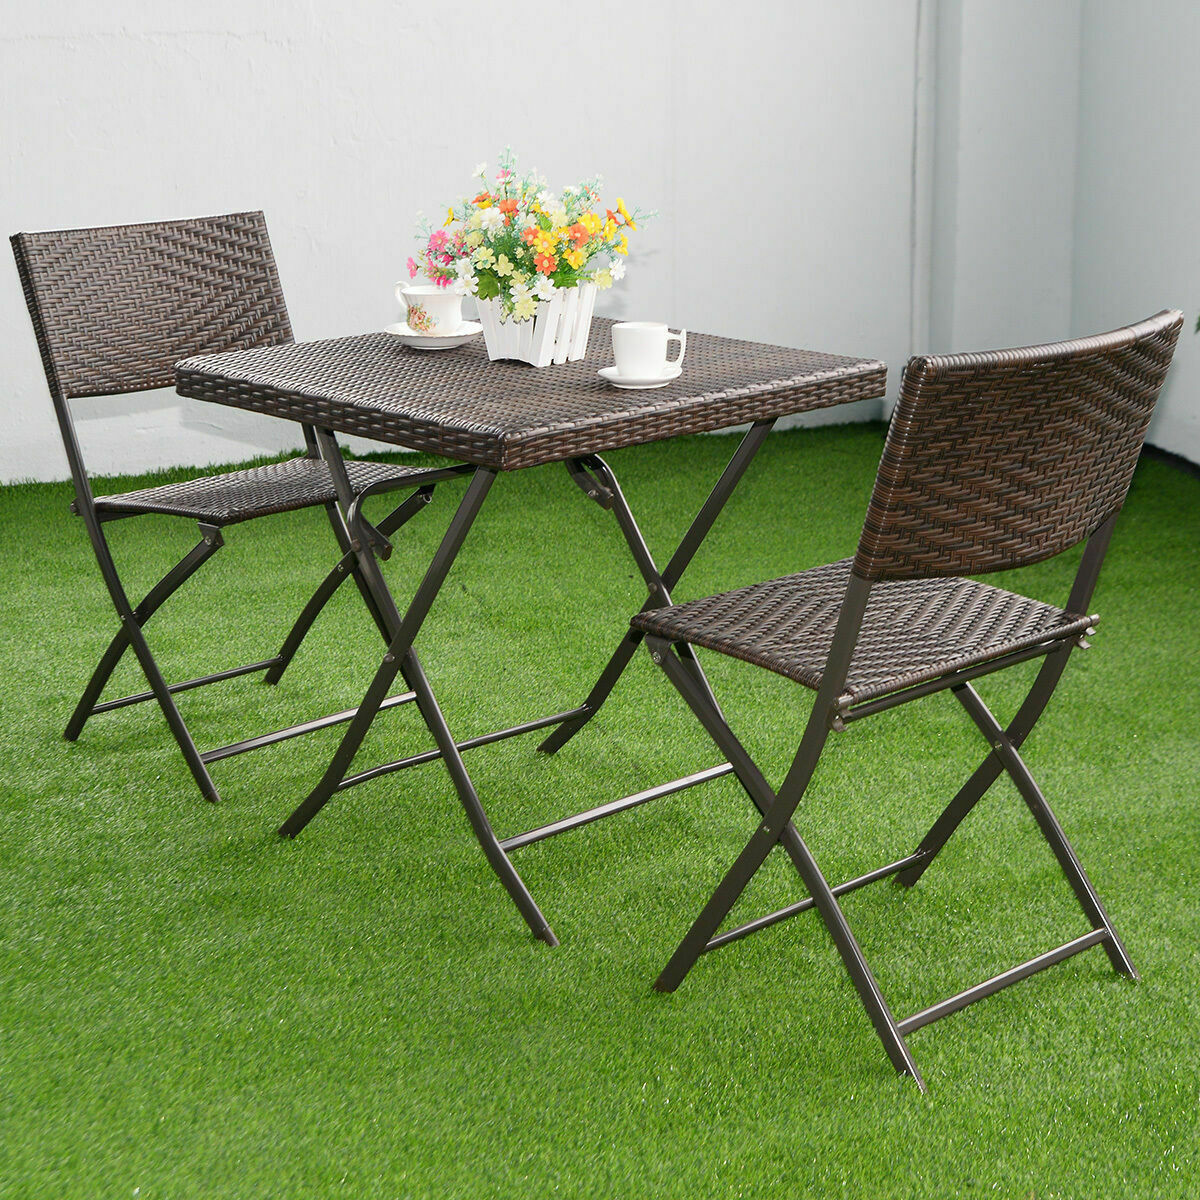 3 Pc Brown Outdoor Folding Table Chair Furniture Set Rattan Wicker Bistro Patio